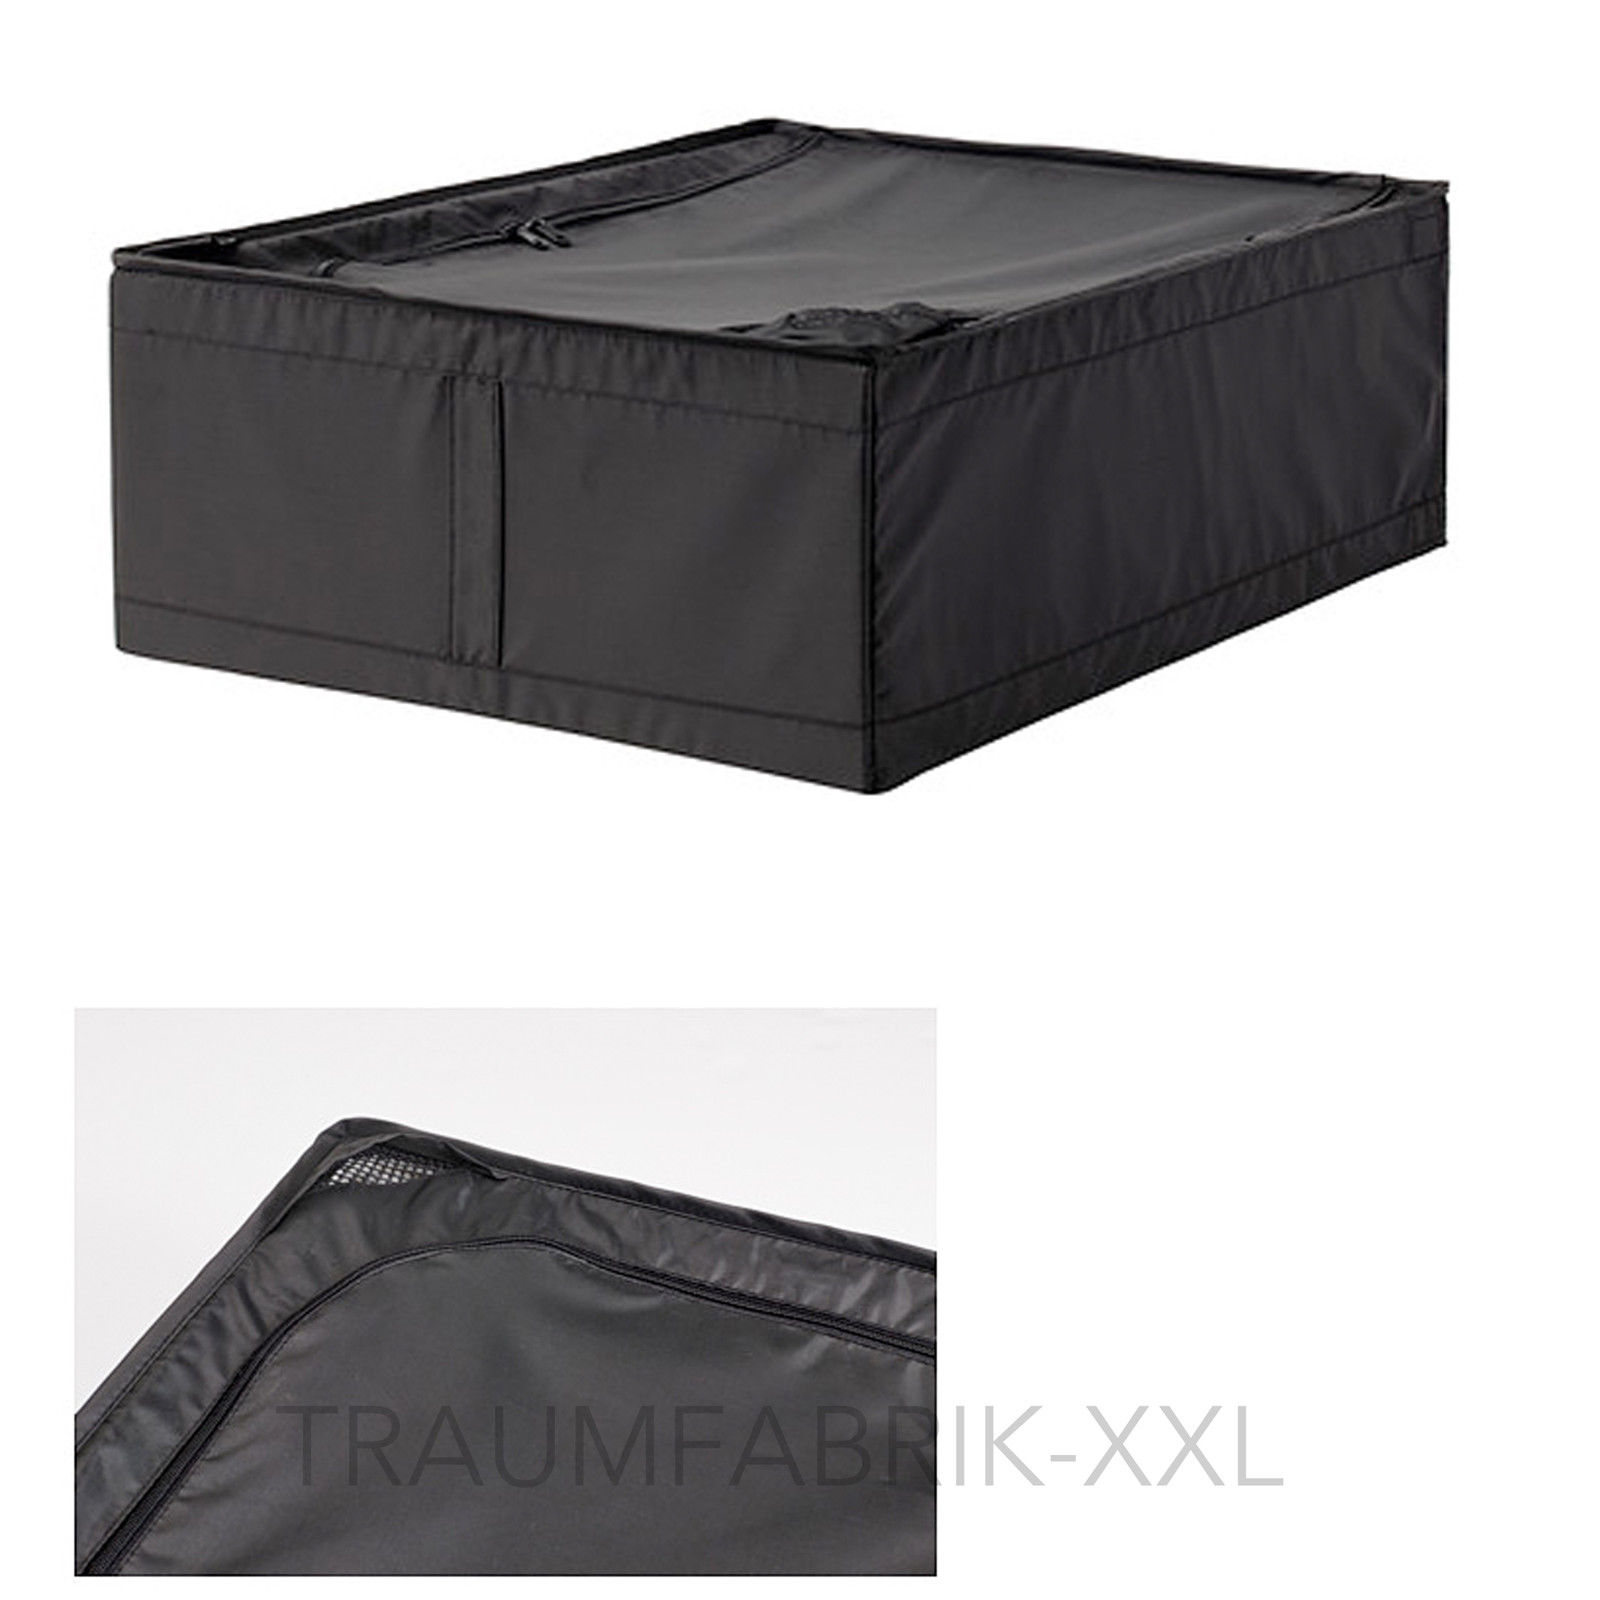 ikea aufbewahrungsbox aufbewahrung bettdecke box tasche kiste regalbox schwarz traumfabrik xxl. Black Bedroom Furniture Sets. Home Design Ideas